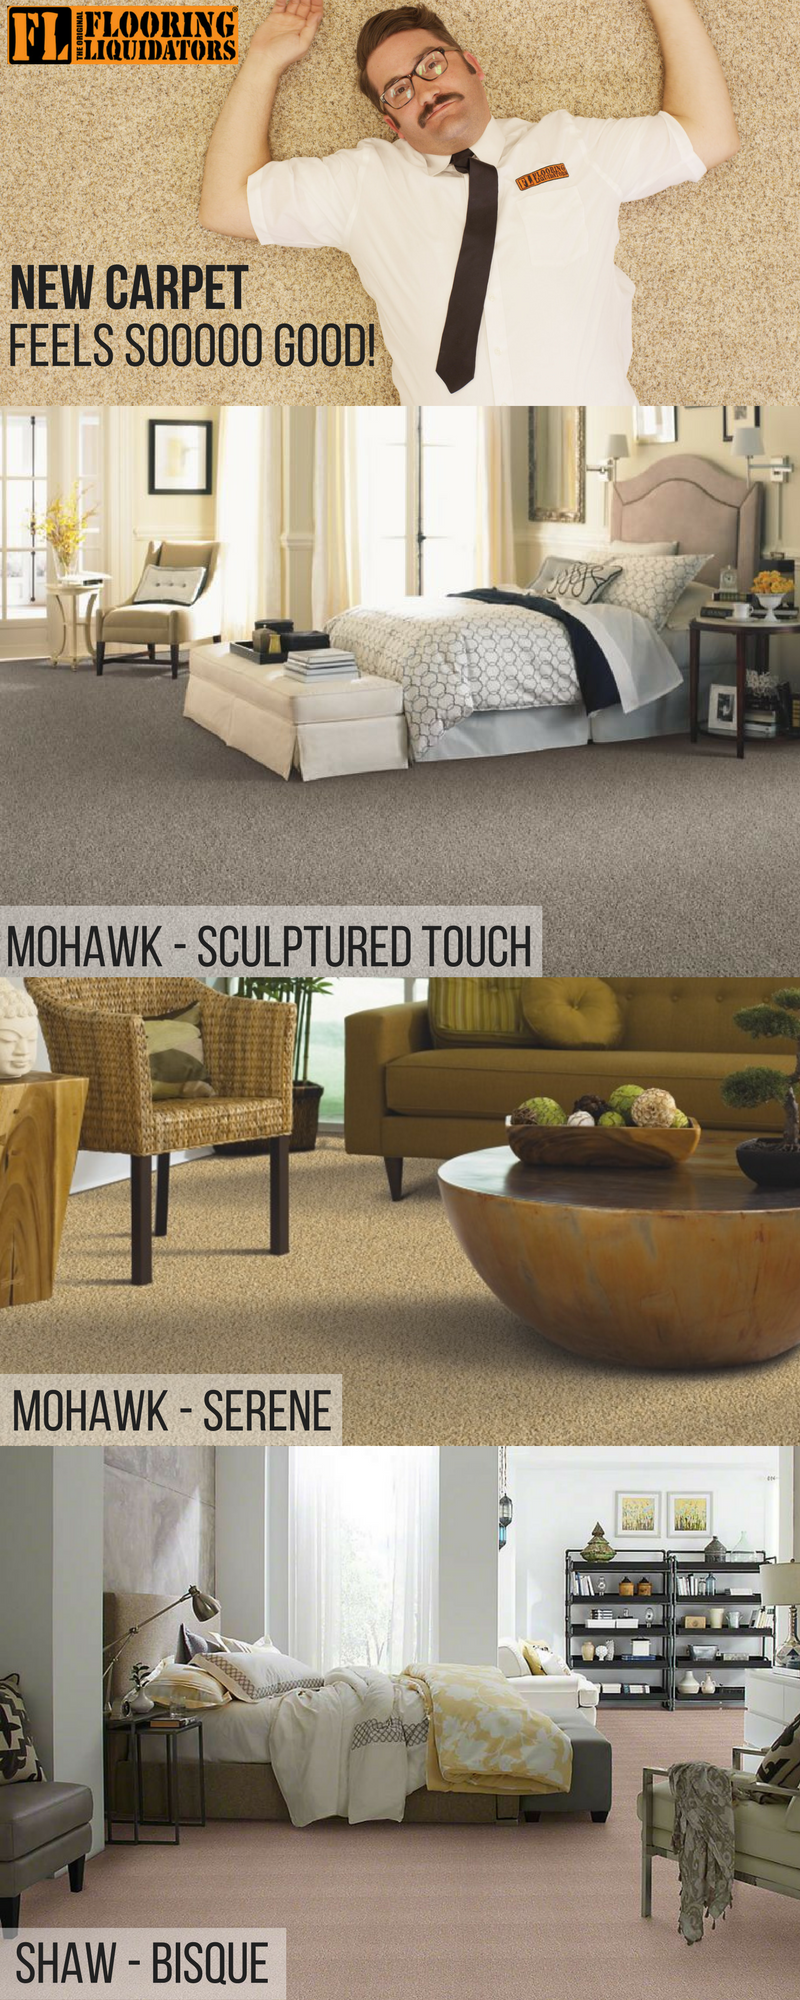 We have a wide variety of carpets to choose from with low